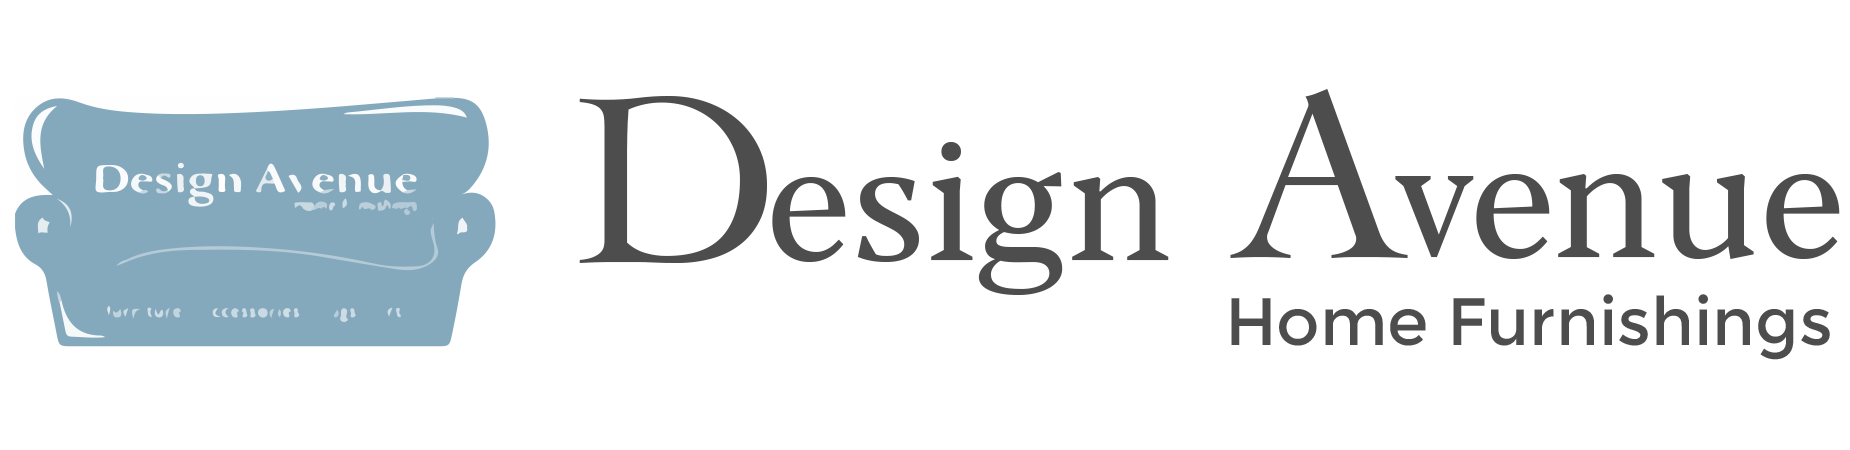 Design Avenue Home Furnishings